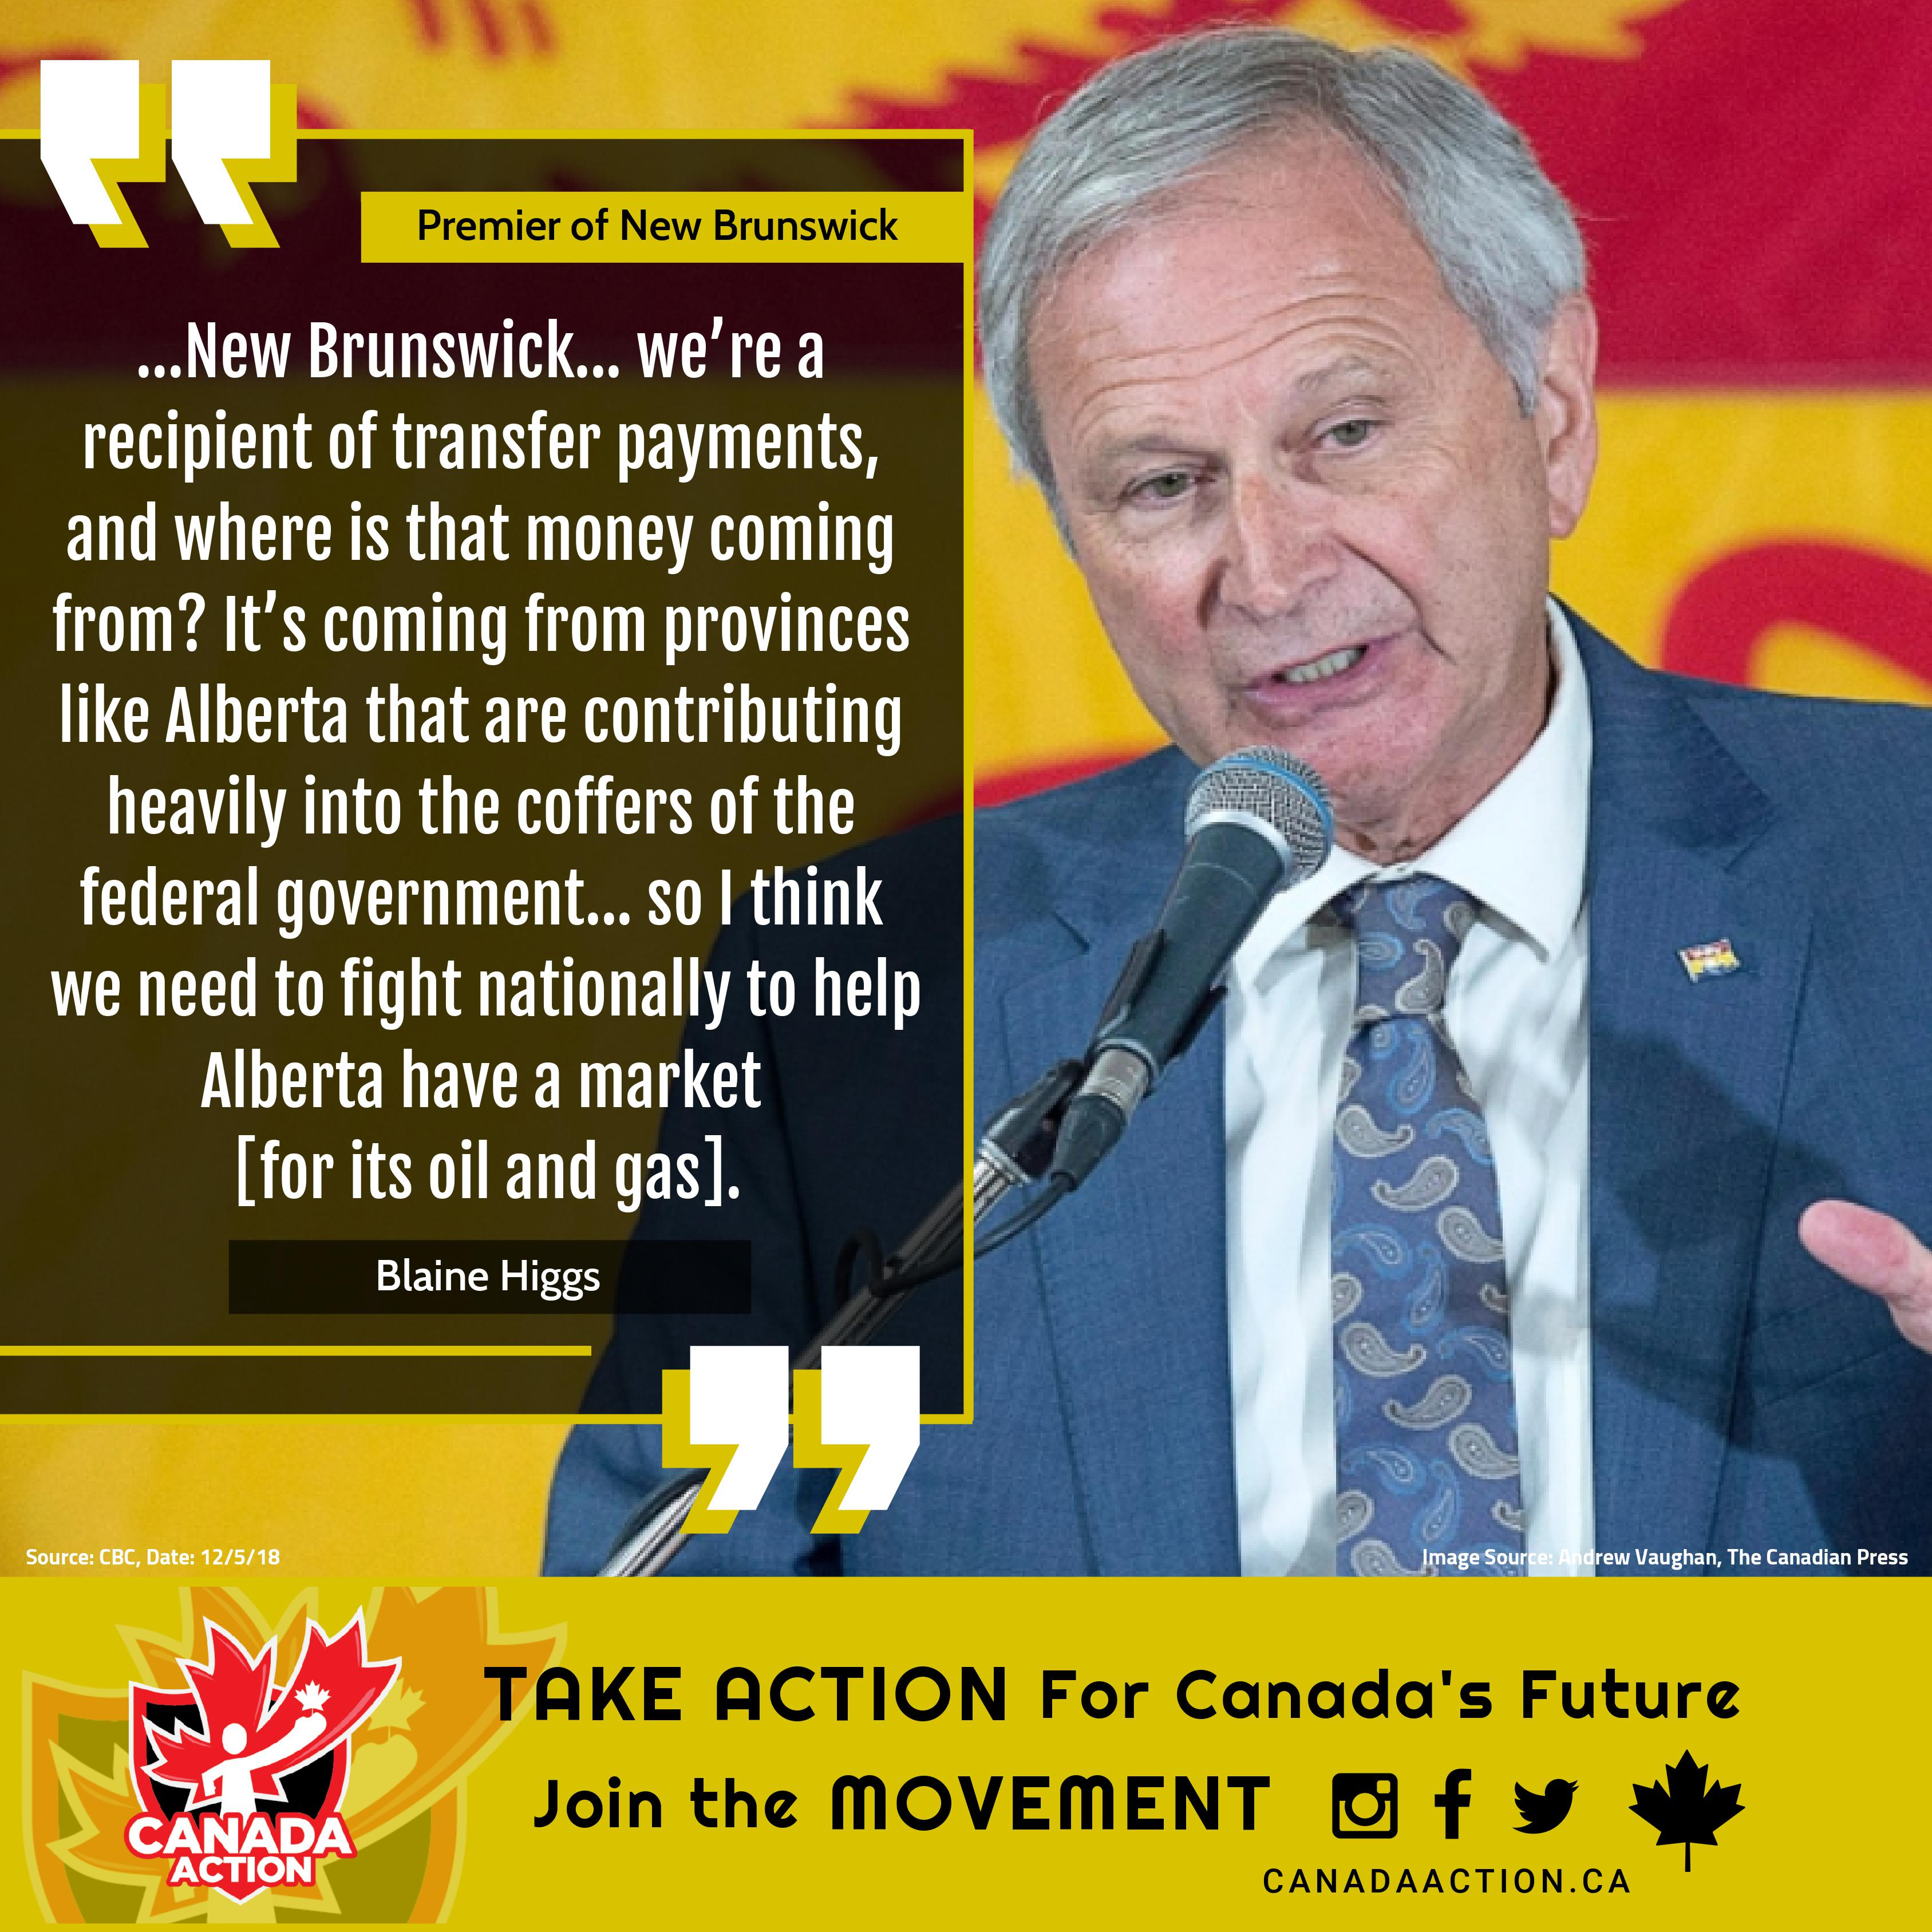 Blaine Higgs Premier of New Brunswick supports the Trans Mountain pipeline expansion